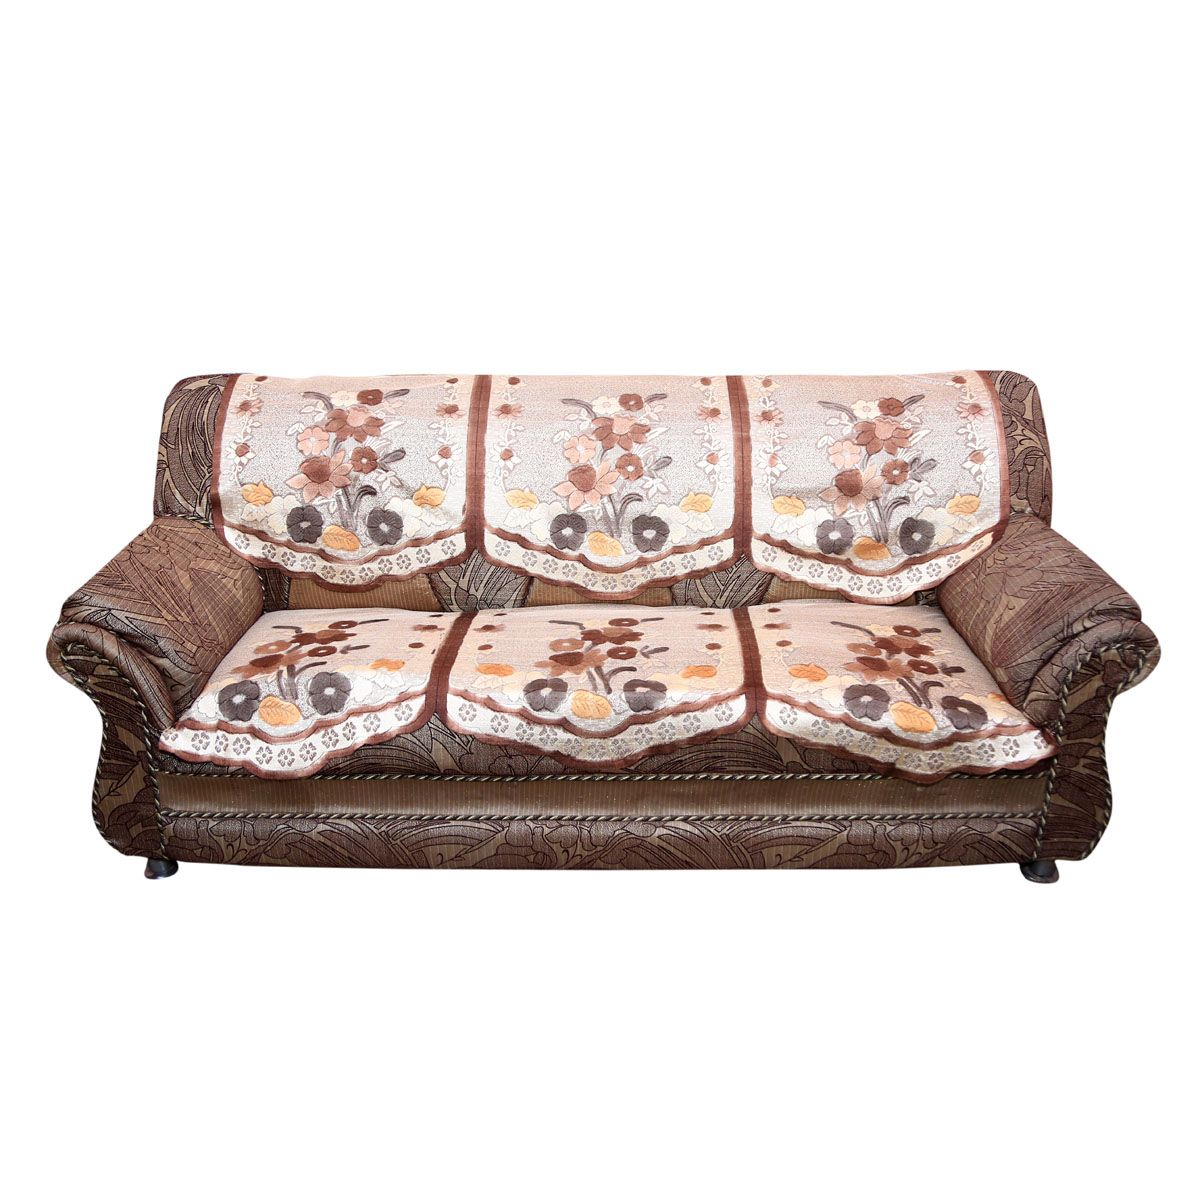 Kuber Industries™ Brown Flower 5 Seater Heavy Cloth Net Sofa Cover Set -10 Pieces (Brown & Cream) Code-KIC107